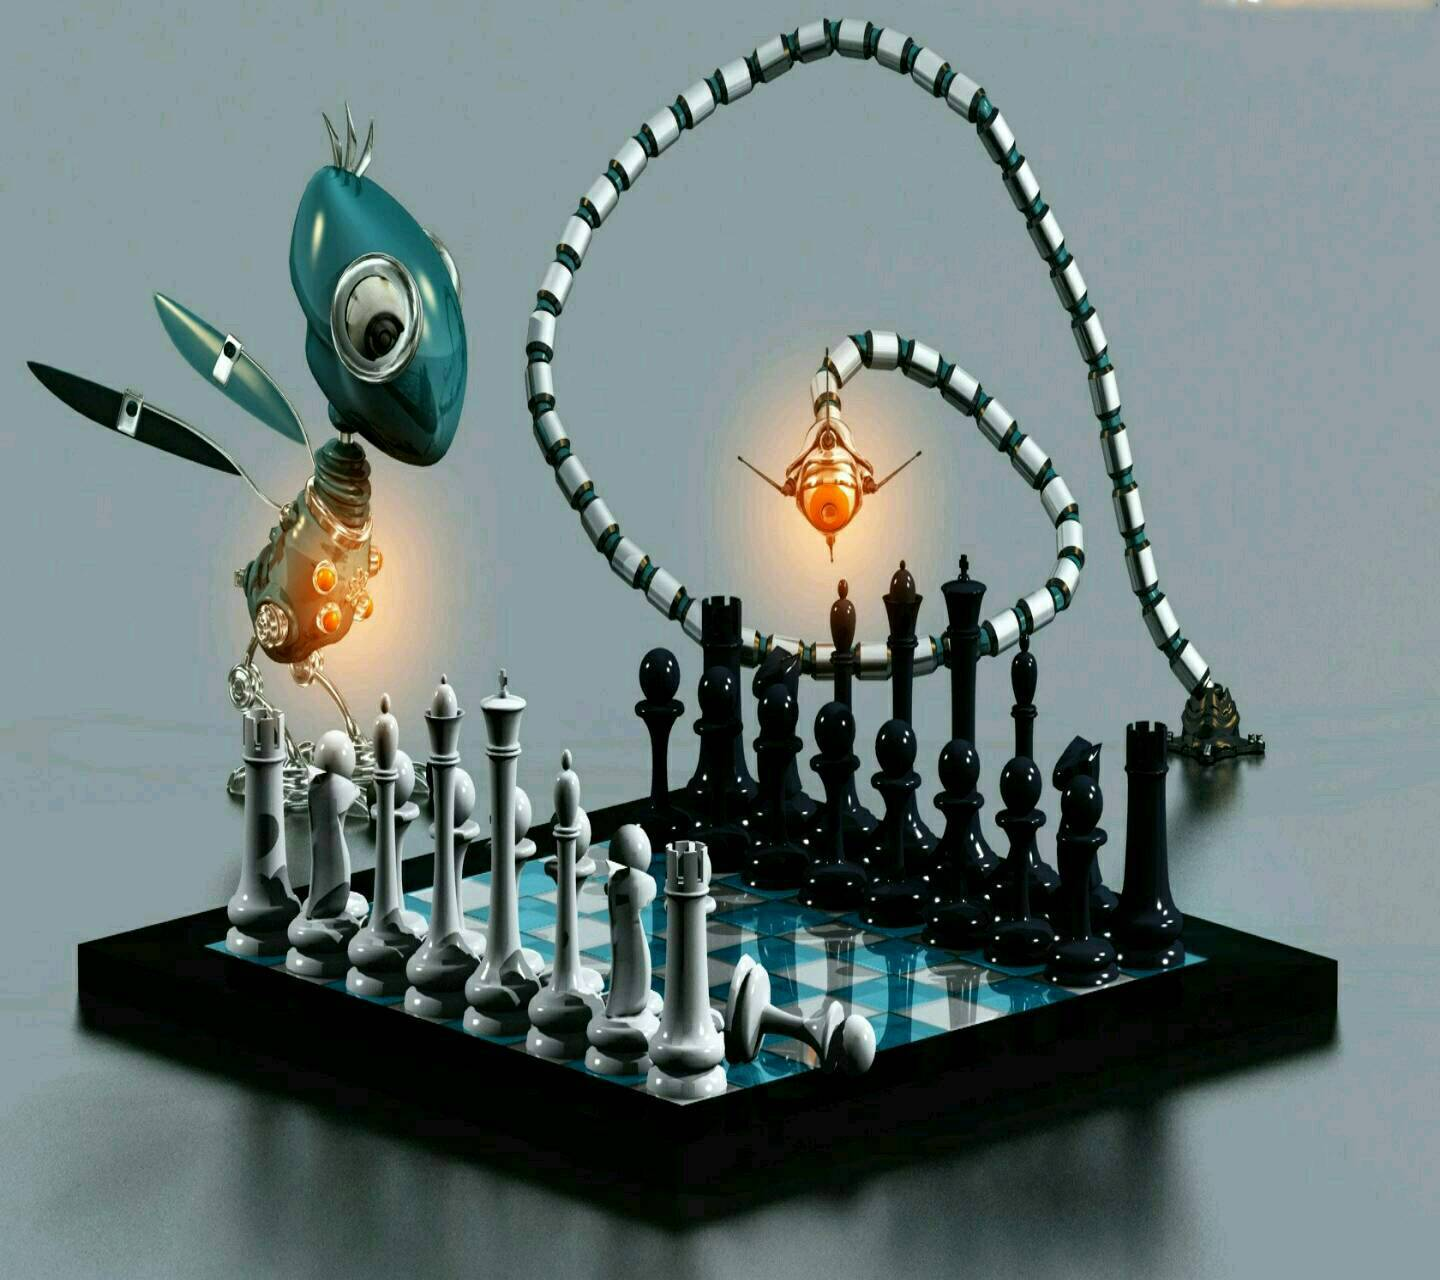 Chess board 3d image